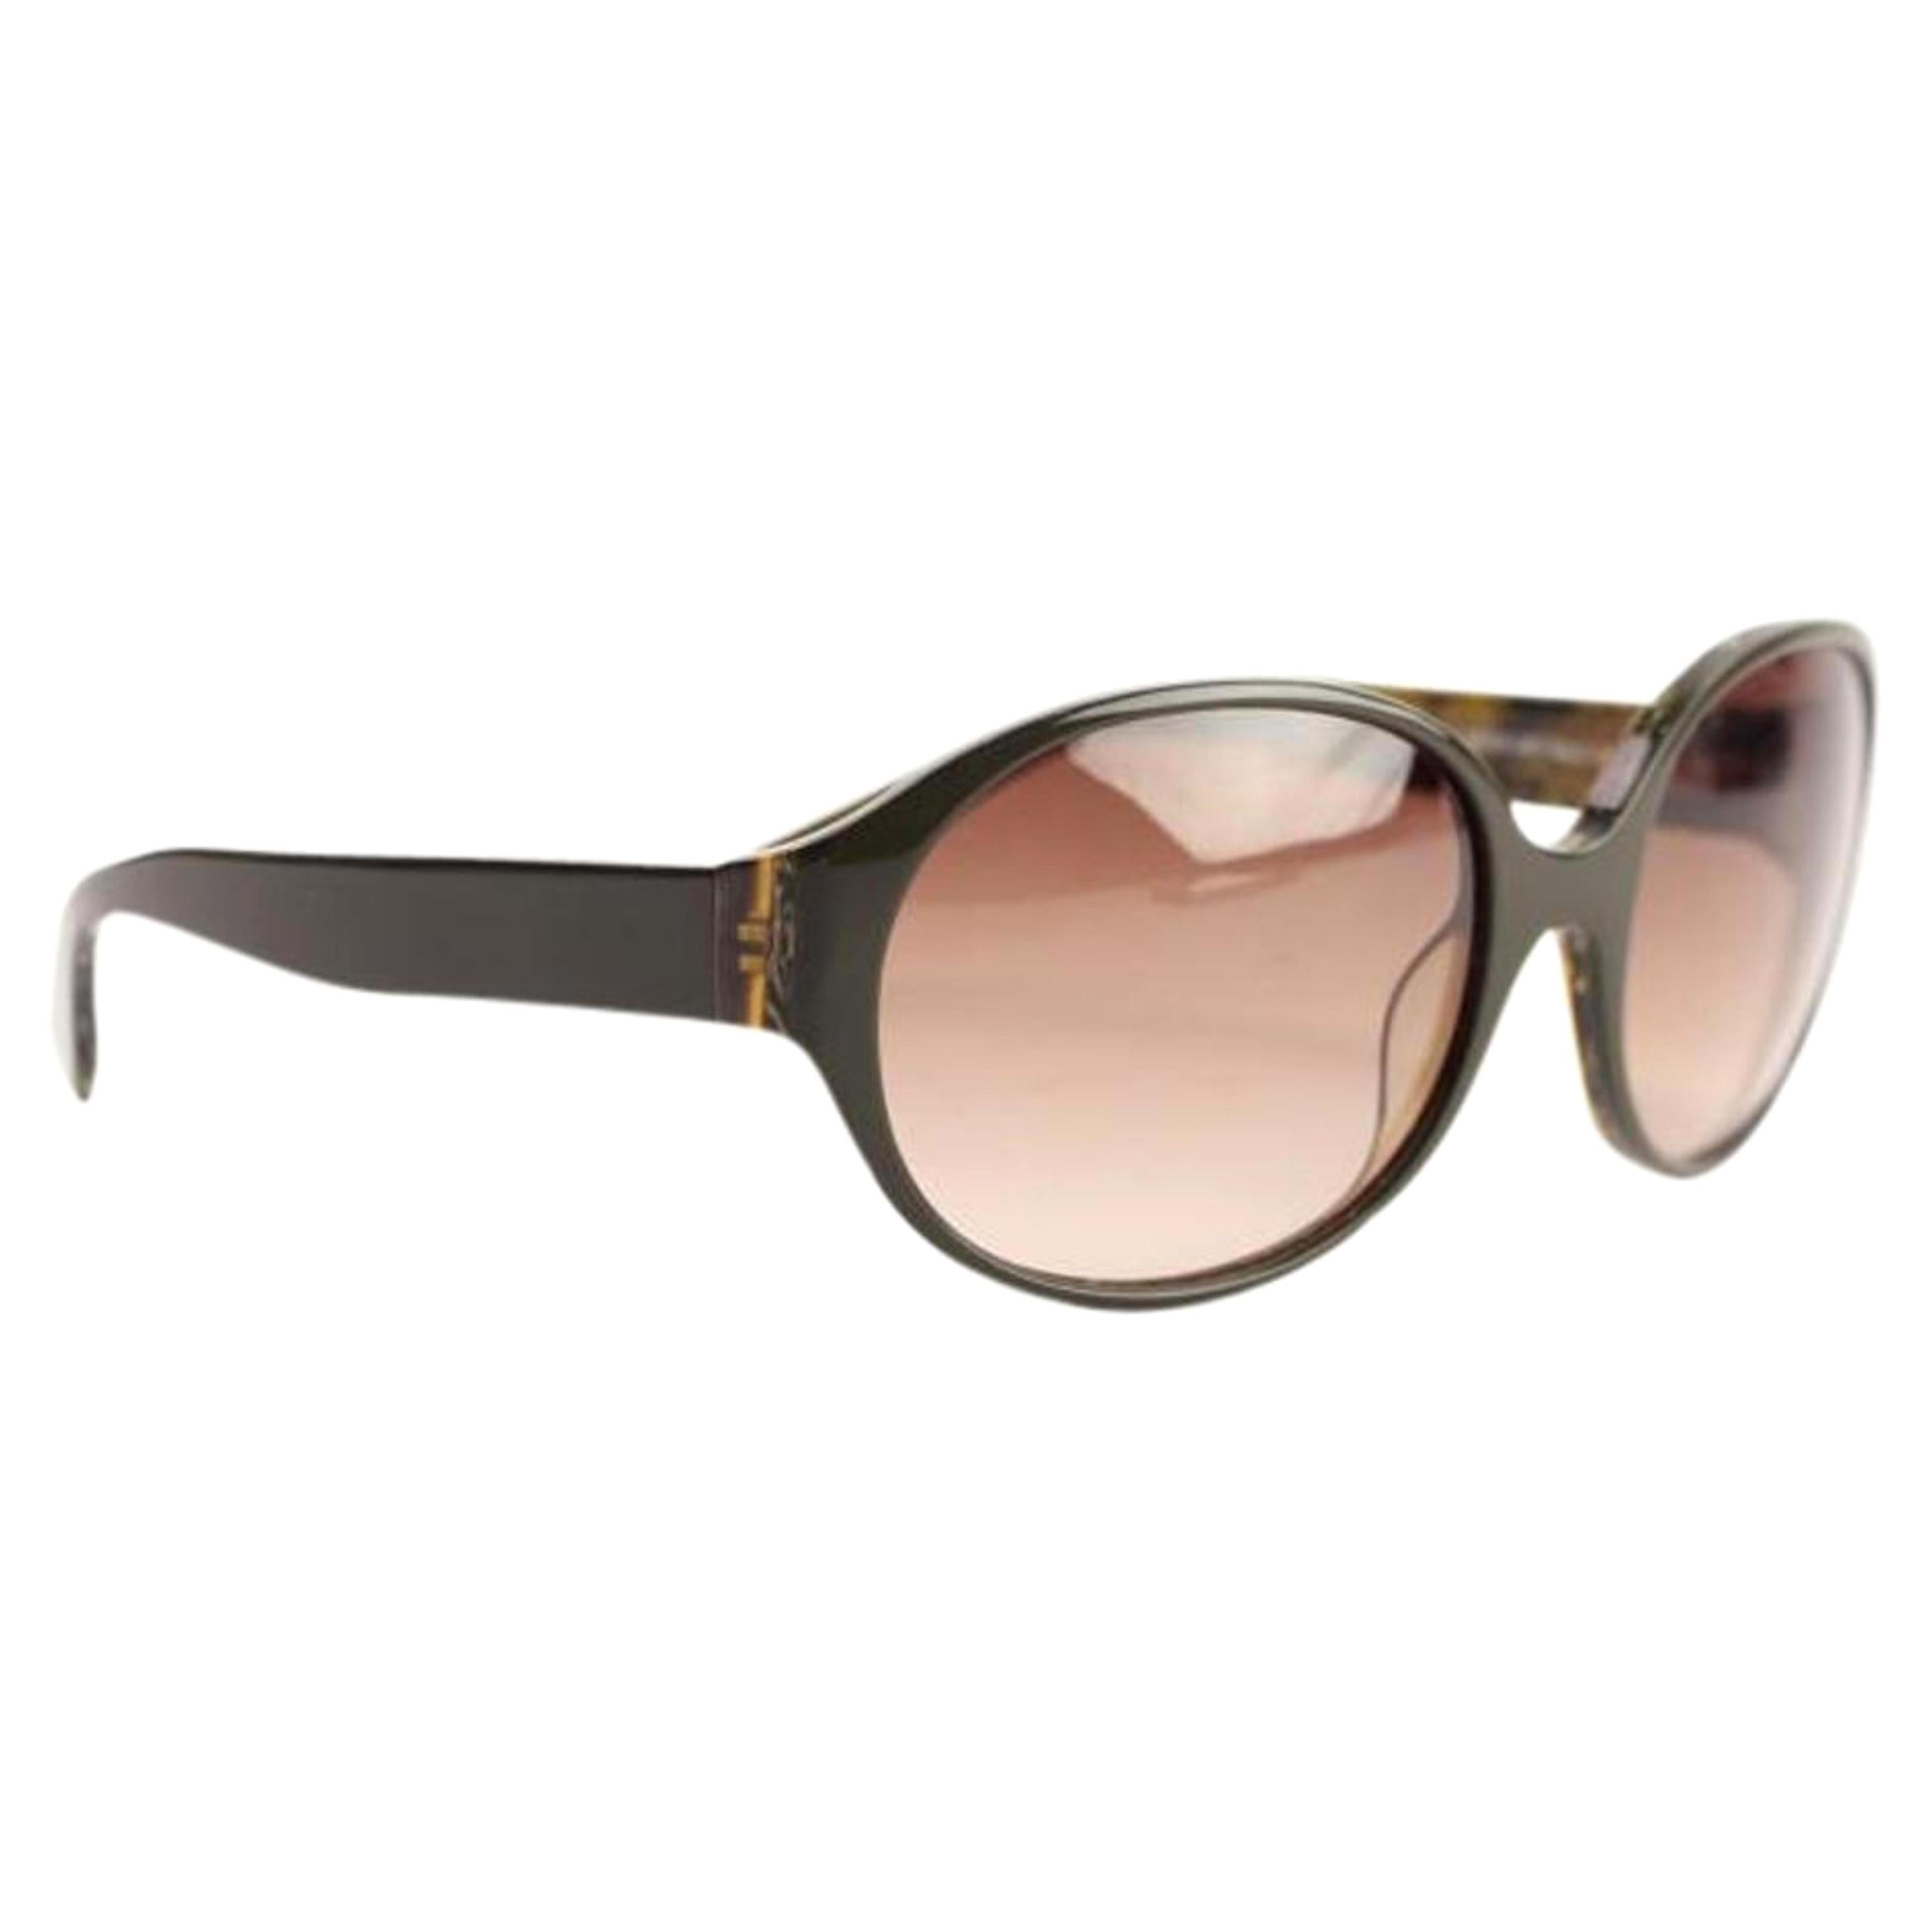 77148188627 Vintage Sunglasses For Sale in USA - 1stdibs